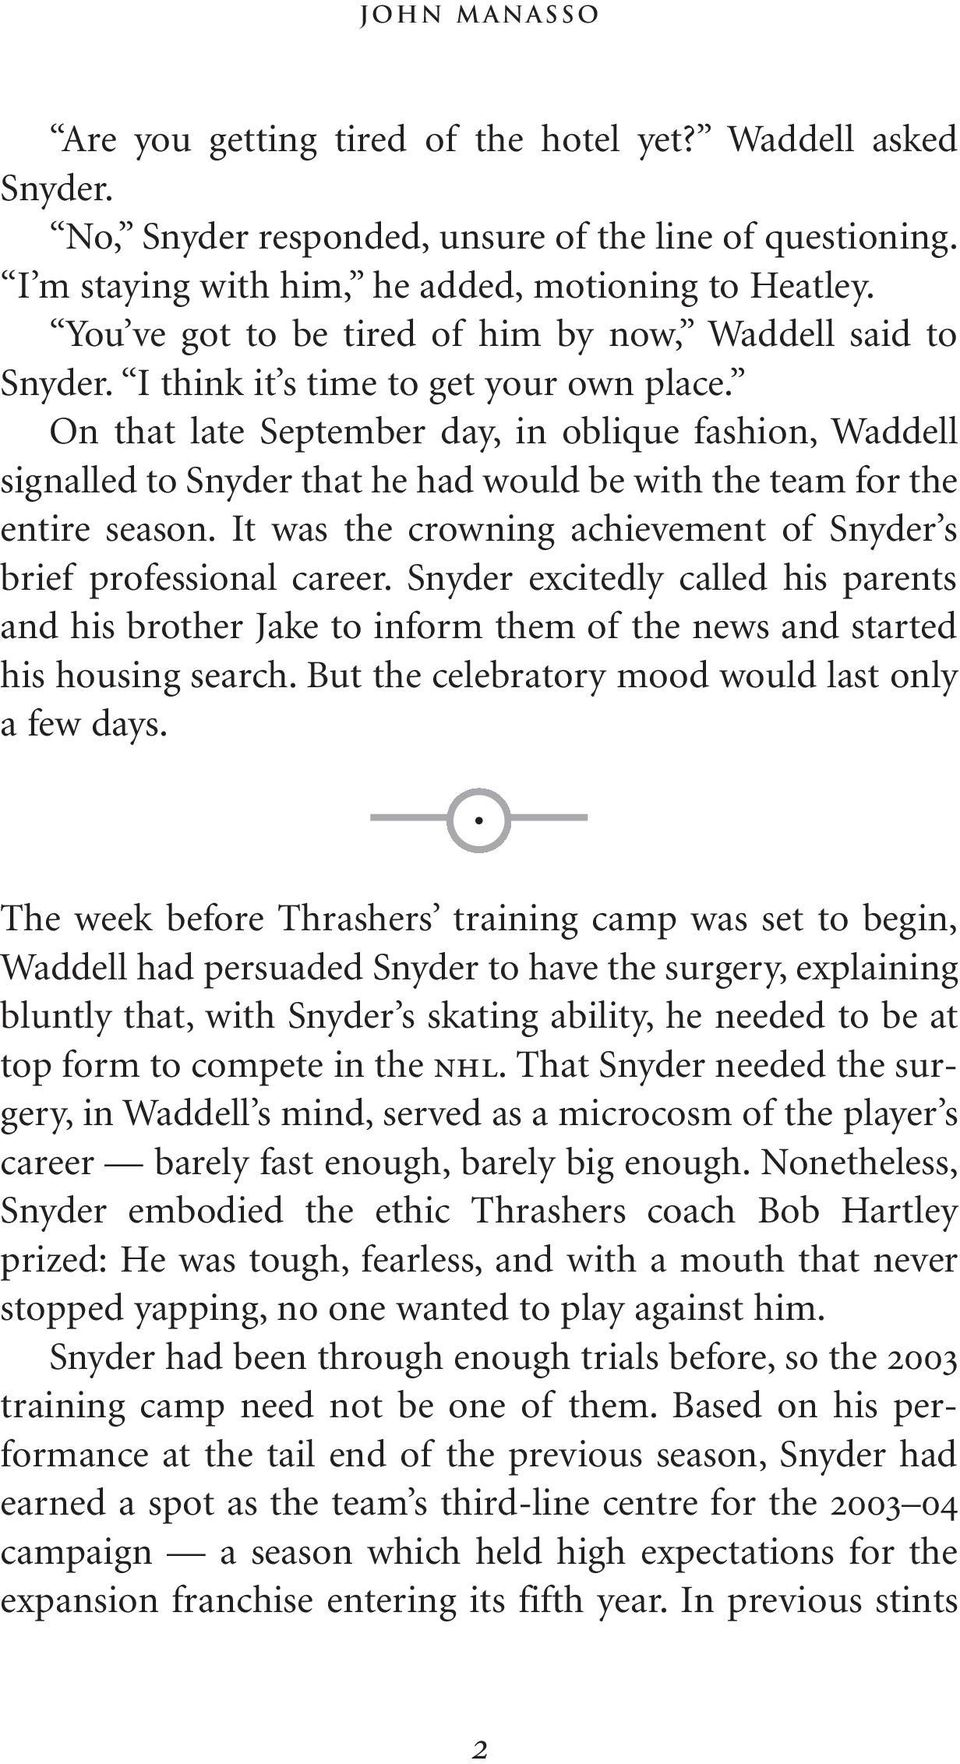 On that late September day, in oblique fashion, Waddell signalled to Snyder that he had would be with the team for the entire season.